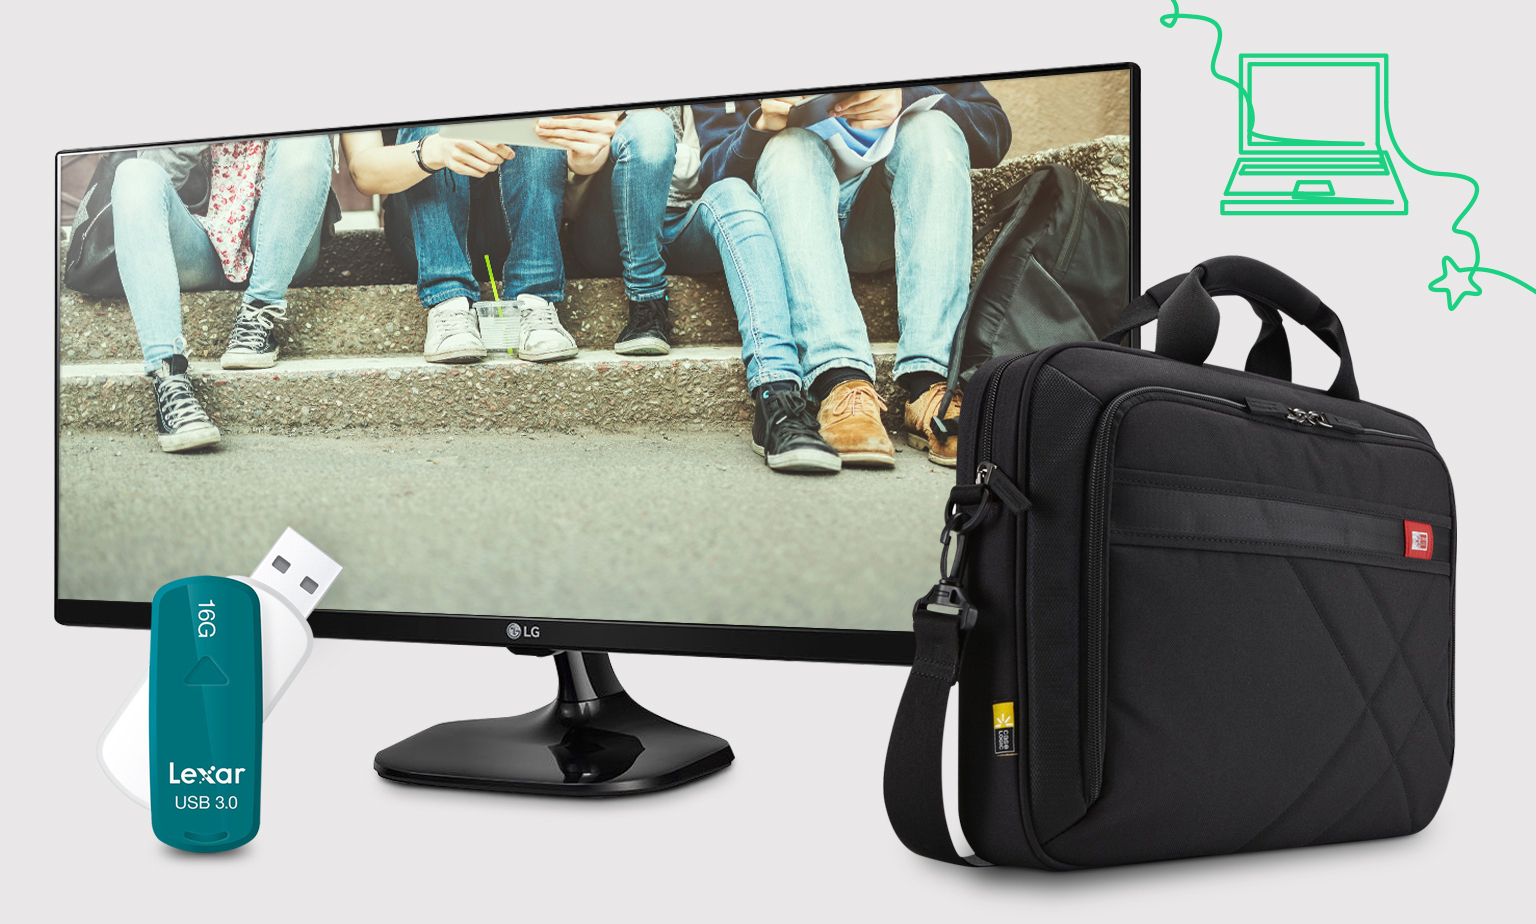 Back to school essentials for students from eBay. Monitors, printers, usb drives, wireless mice and keyboards, bags & cases.